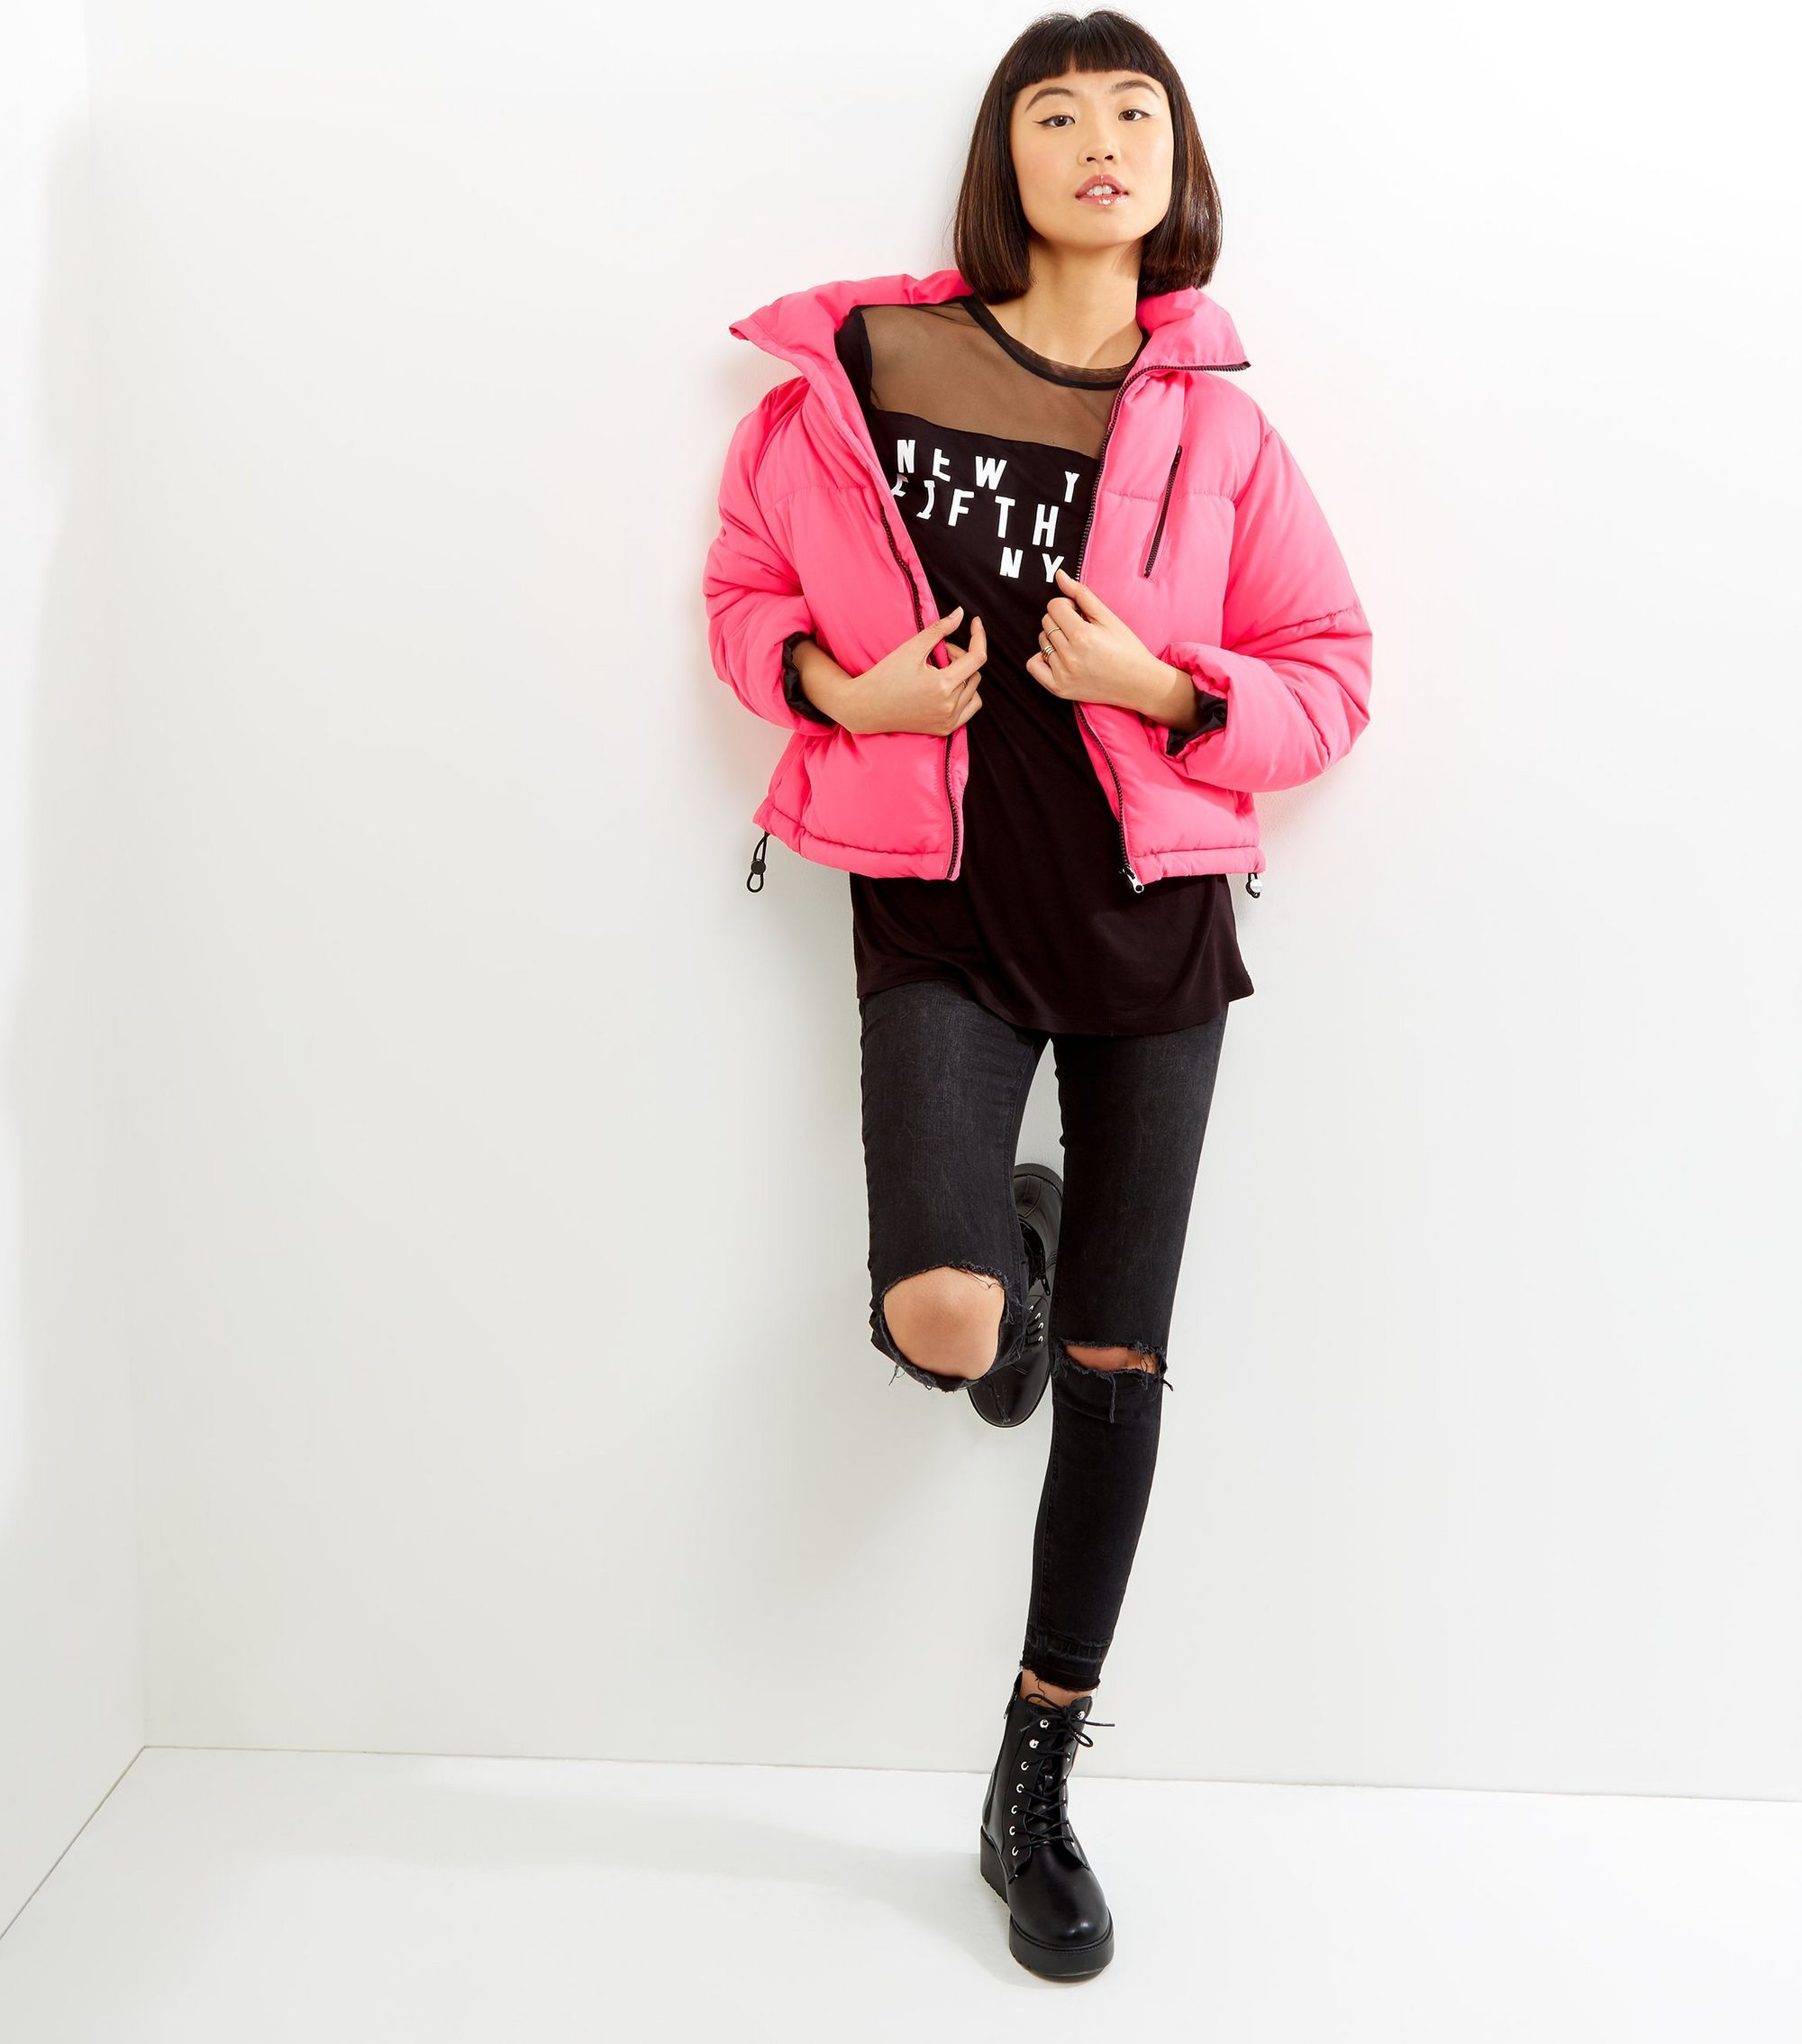 Bright Pink Puffer Jacket New Look Pink Puffer Jacket Jackets Puffer Jackets [ 2268 x 2000 Pixel ]